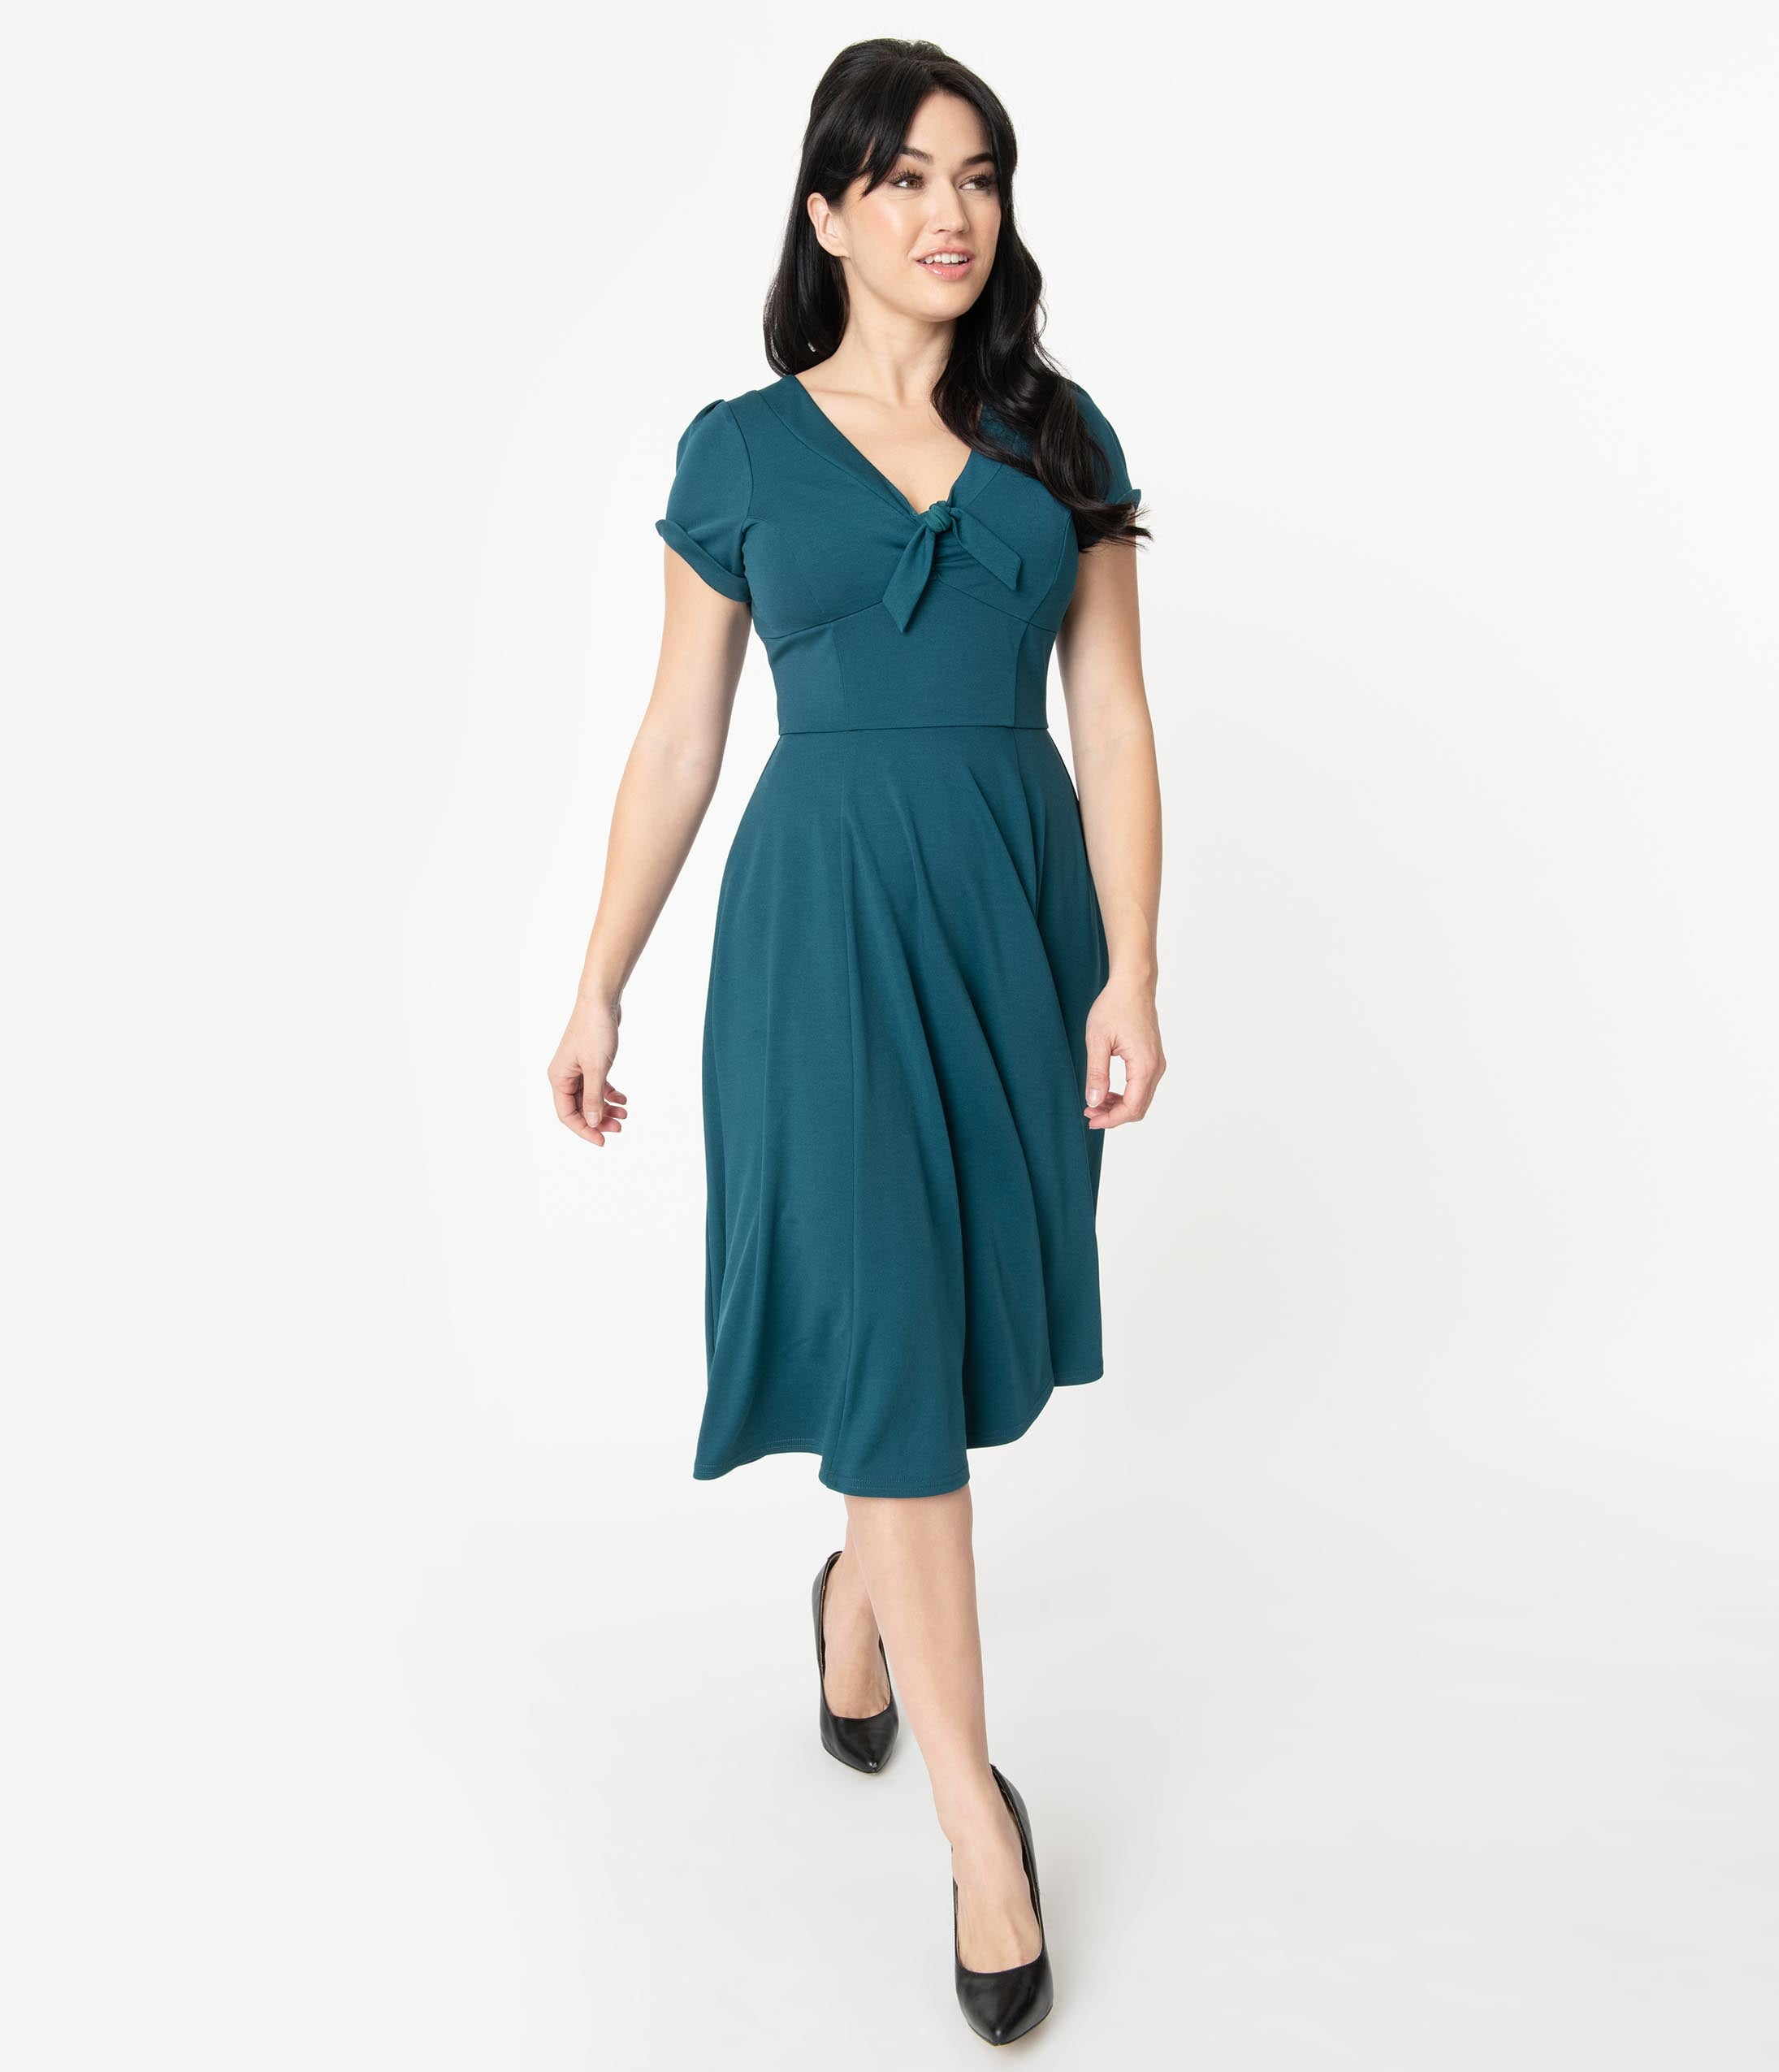 500 Vintage Style Dresses for Sale | Vintage Inspired Dresses Unique Vintage 1940S Teal Natalie Swing Dress $78.00 AT vintagedancer.com